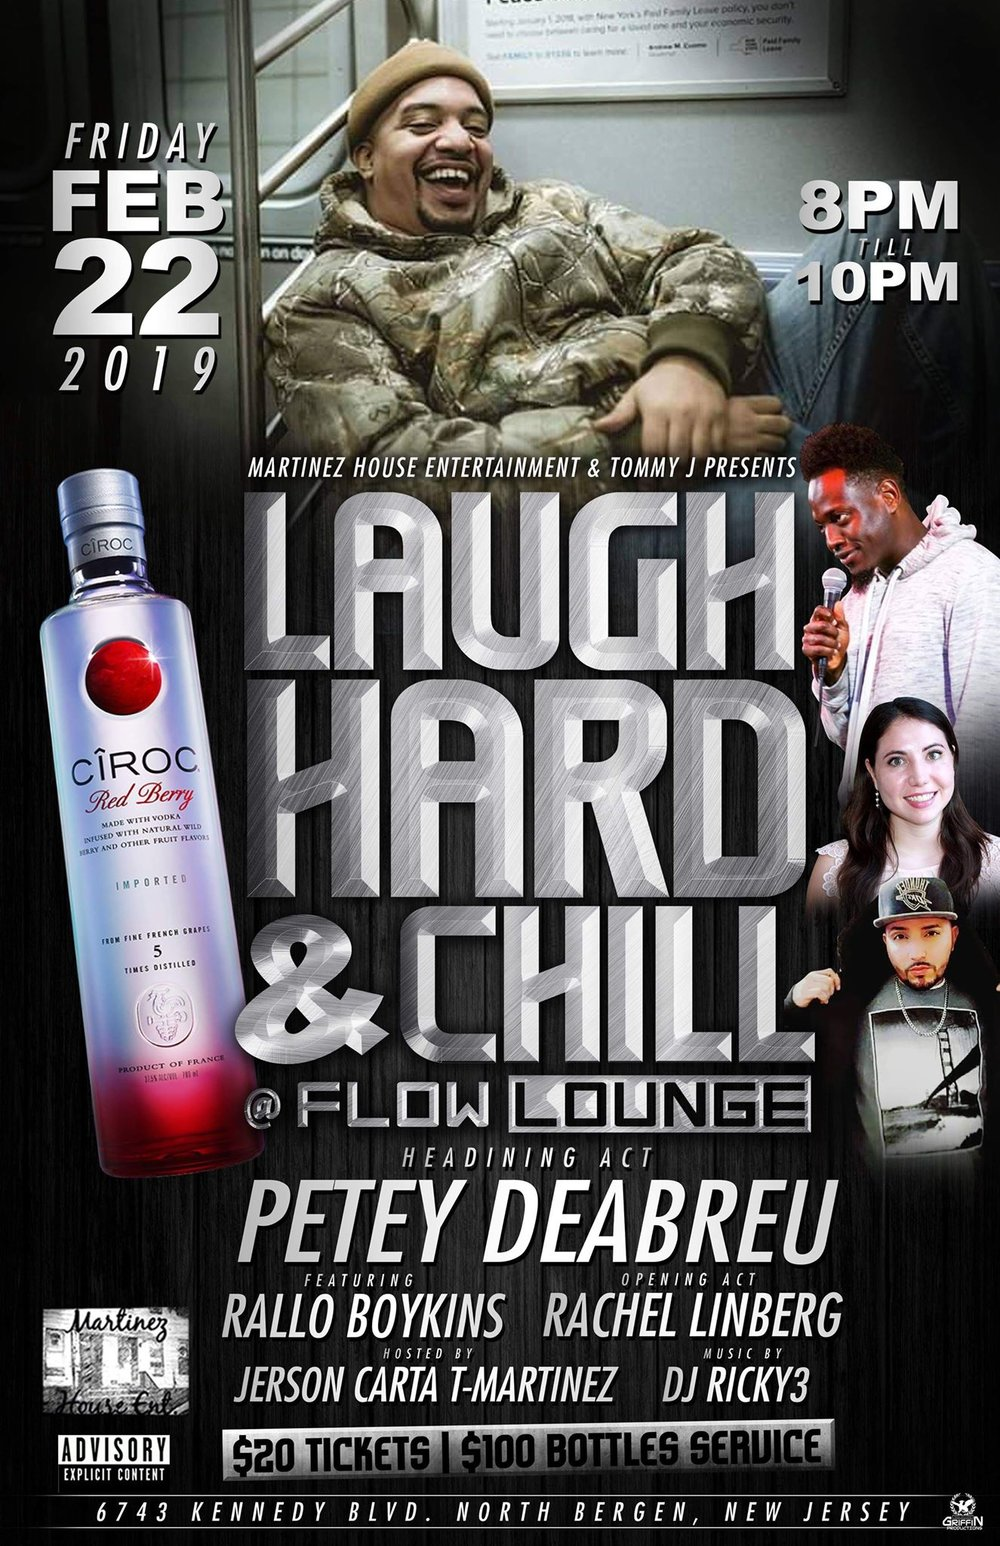 Laugh Hard and Chill Friday, Feb 22th 8:oopm-1o:oopm Flow Lounge | 6743 Kennedy Blvd | North Bergen, NJ 07047